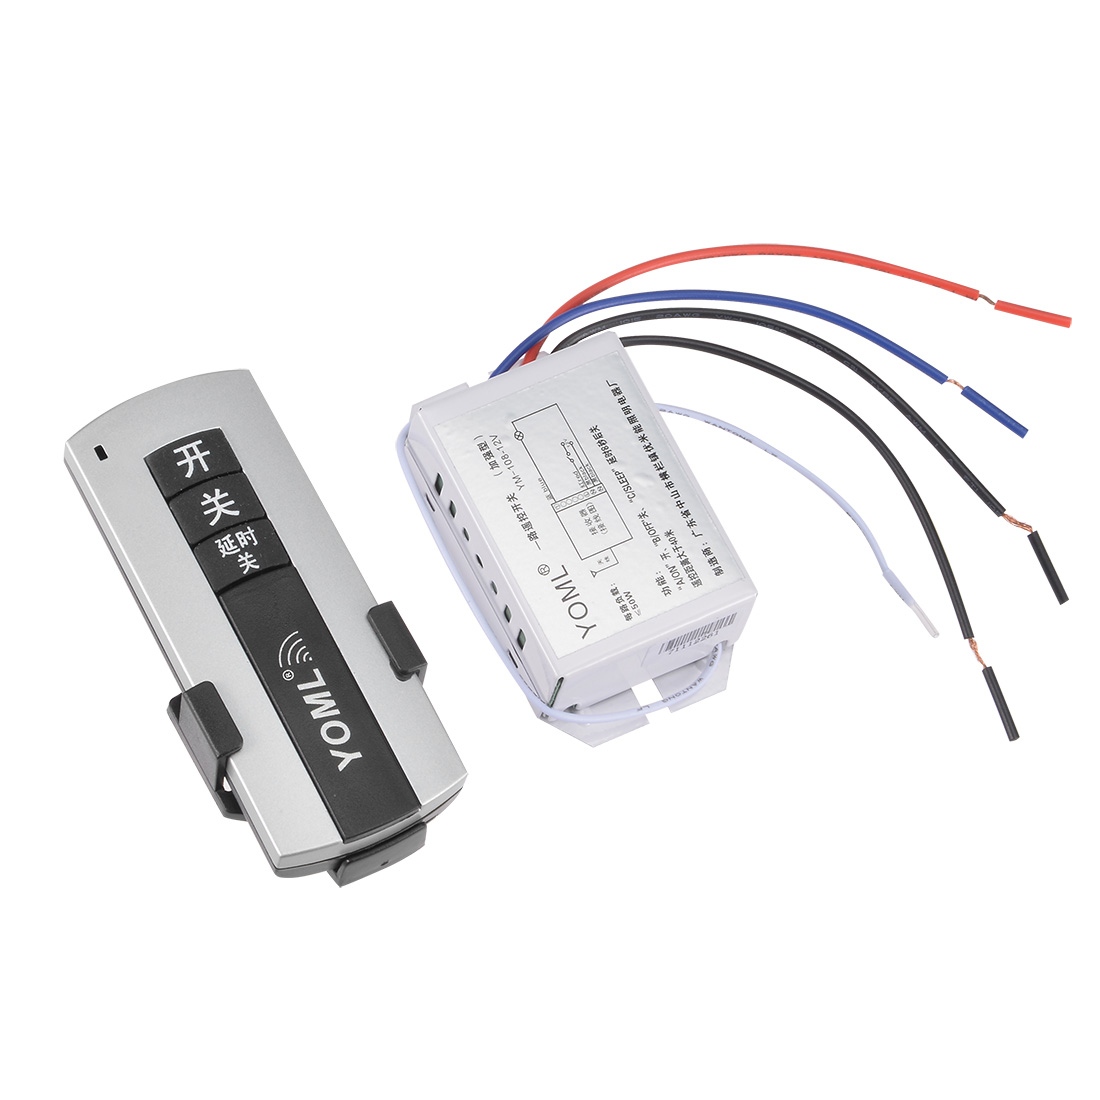 DC 12V 1 Port Buttons Wireless Digital RF Remote Control Lamp Switch 315MHZ